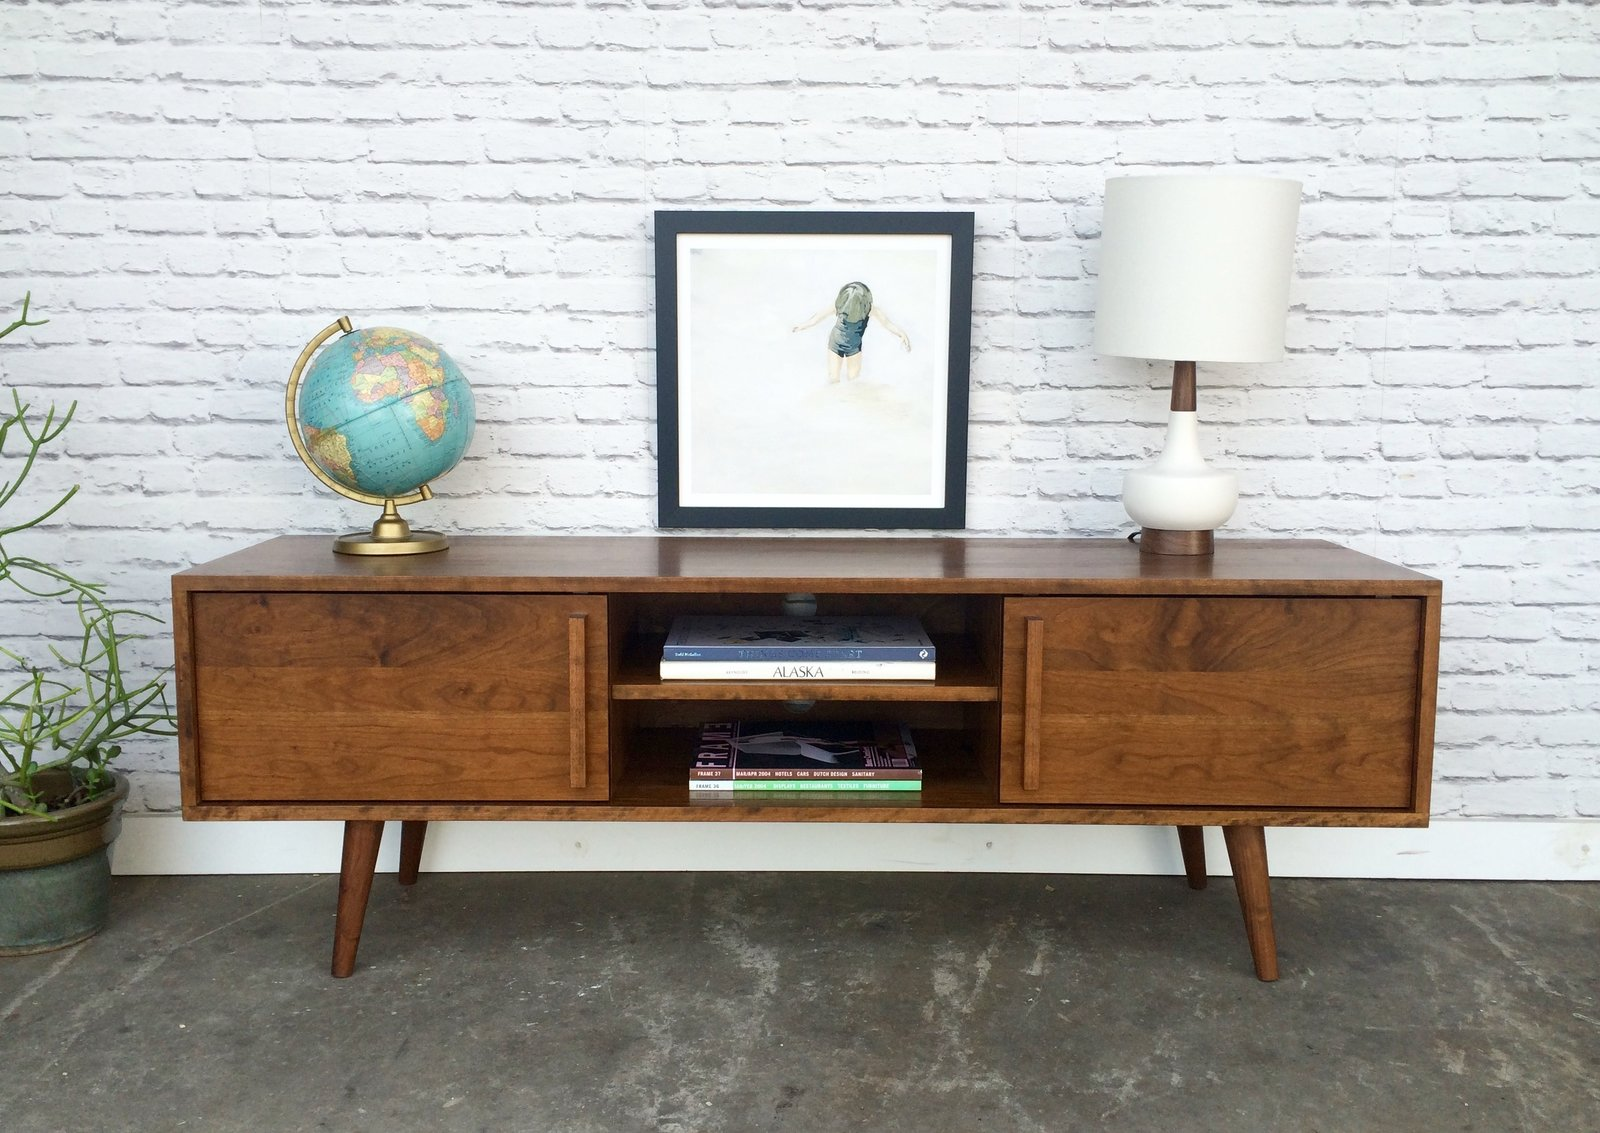 Kasse credenza  Credenzas & TV Stands by STOR New York - Handmade Furniture